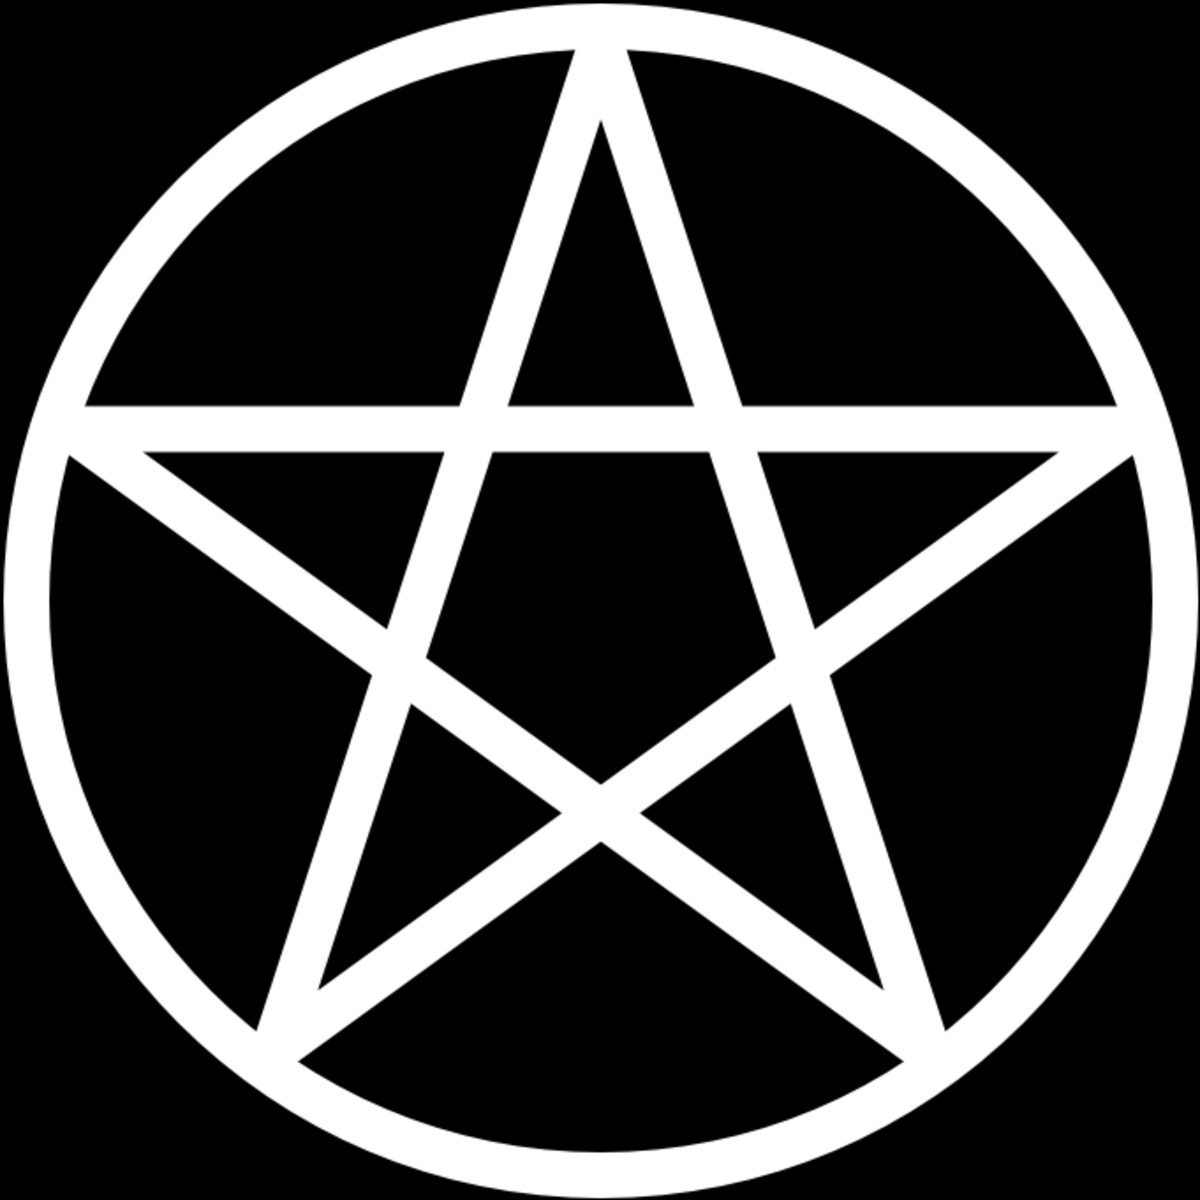 The LBRP: Lesser Banishing Ritual of the Pentagram